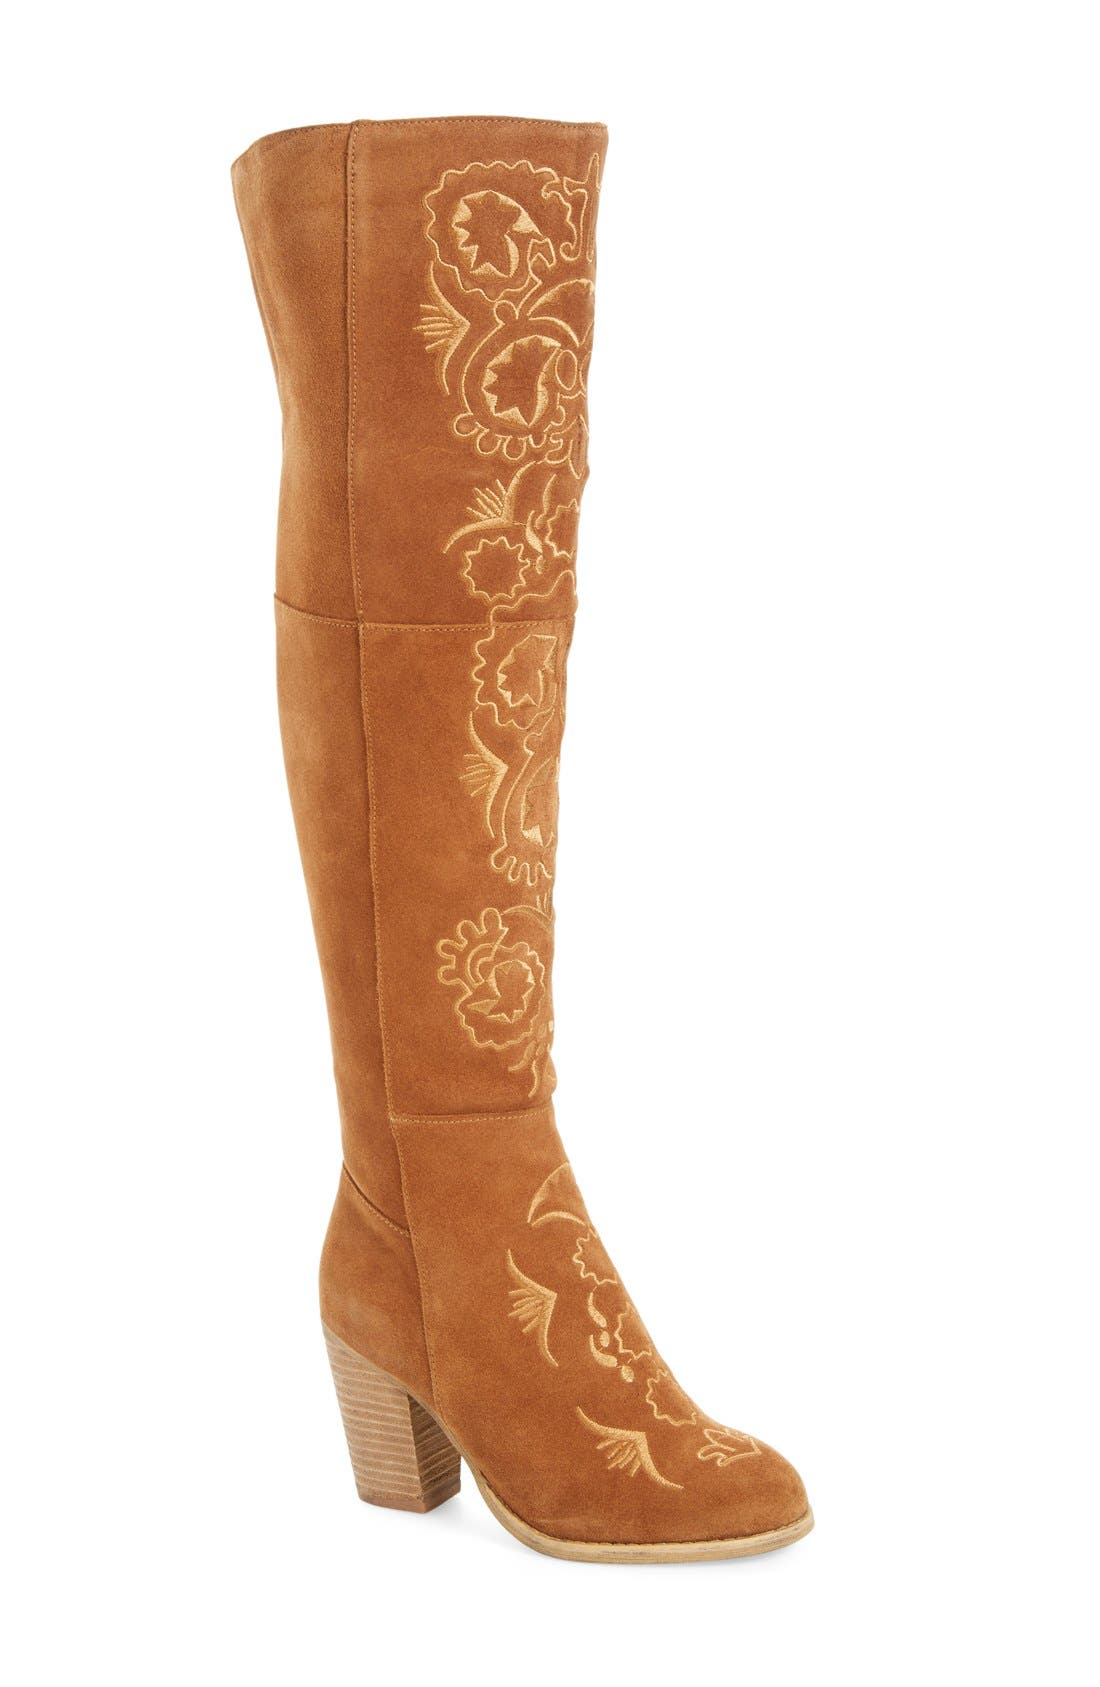 Alternate Image 1 Selected - Sbicca Acapella Embroidered Over the Knee Boot (Women)